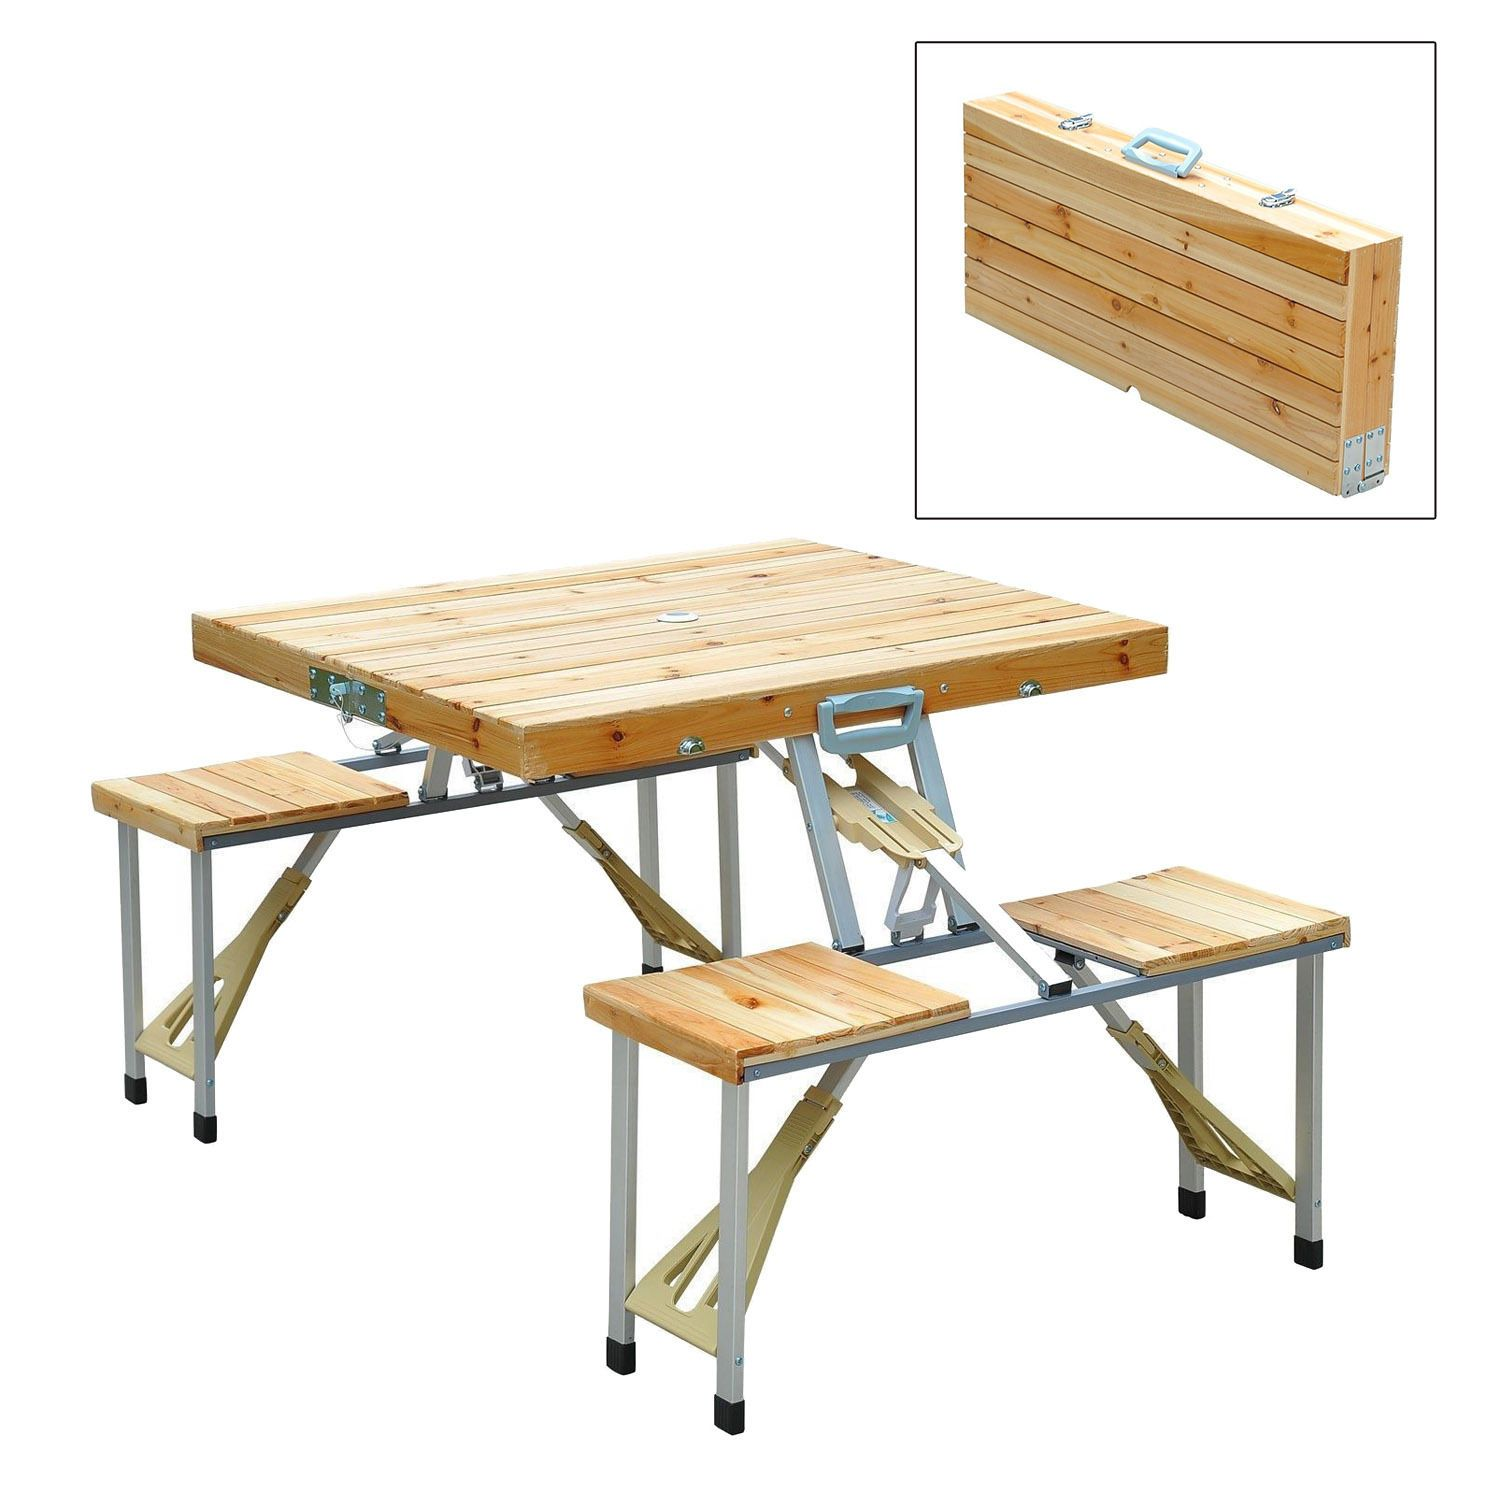 Wooden Camping Picnic Table Bench Seat Outdoor Portable Folding Aluminum 4 Seats Camping Picnic Table Portable Picnic Table Foldable Picnic Table